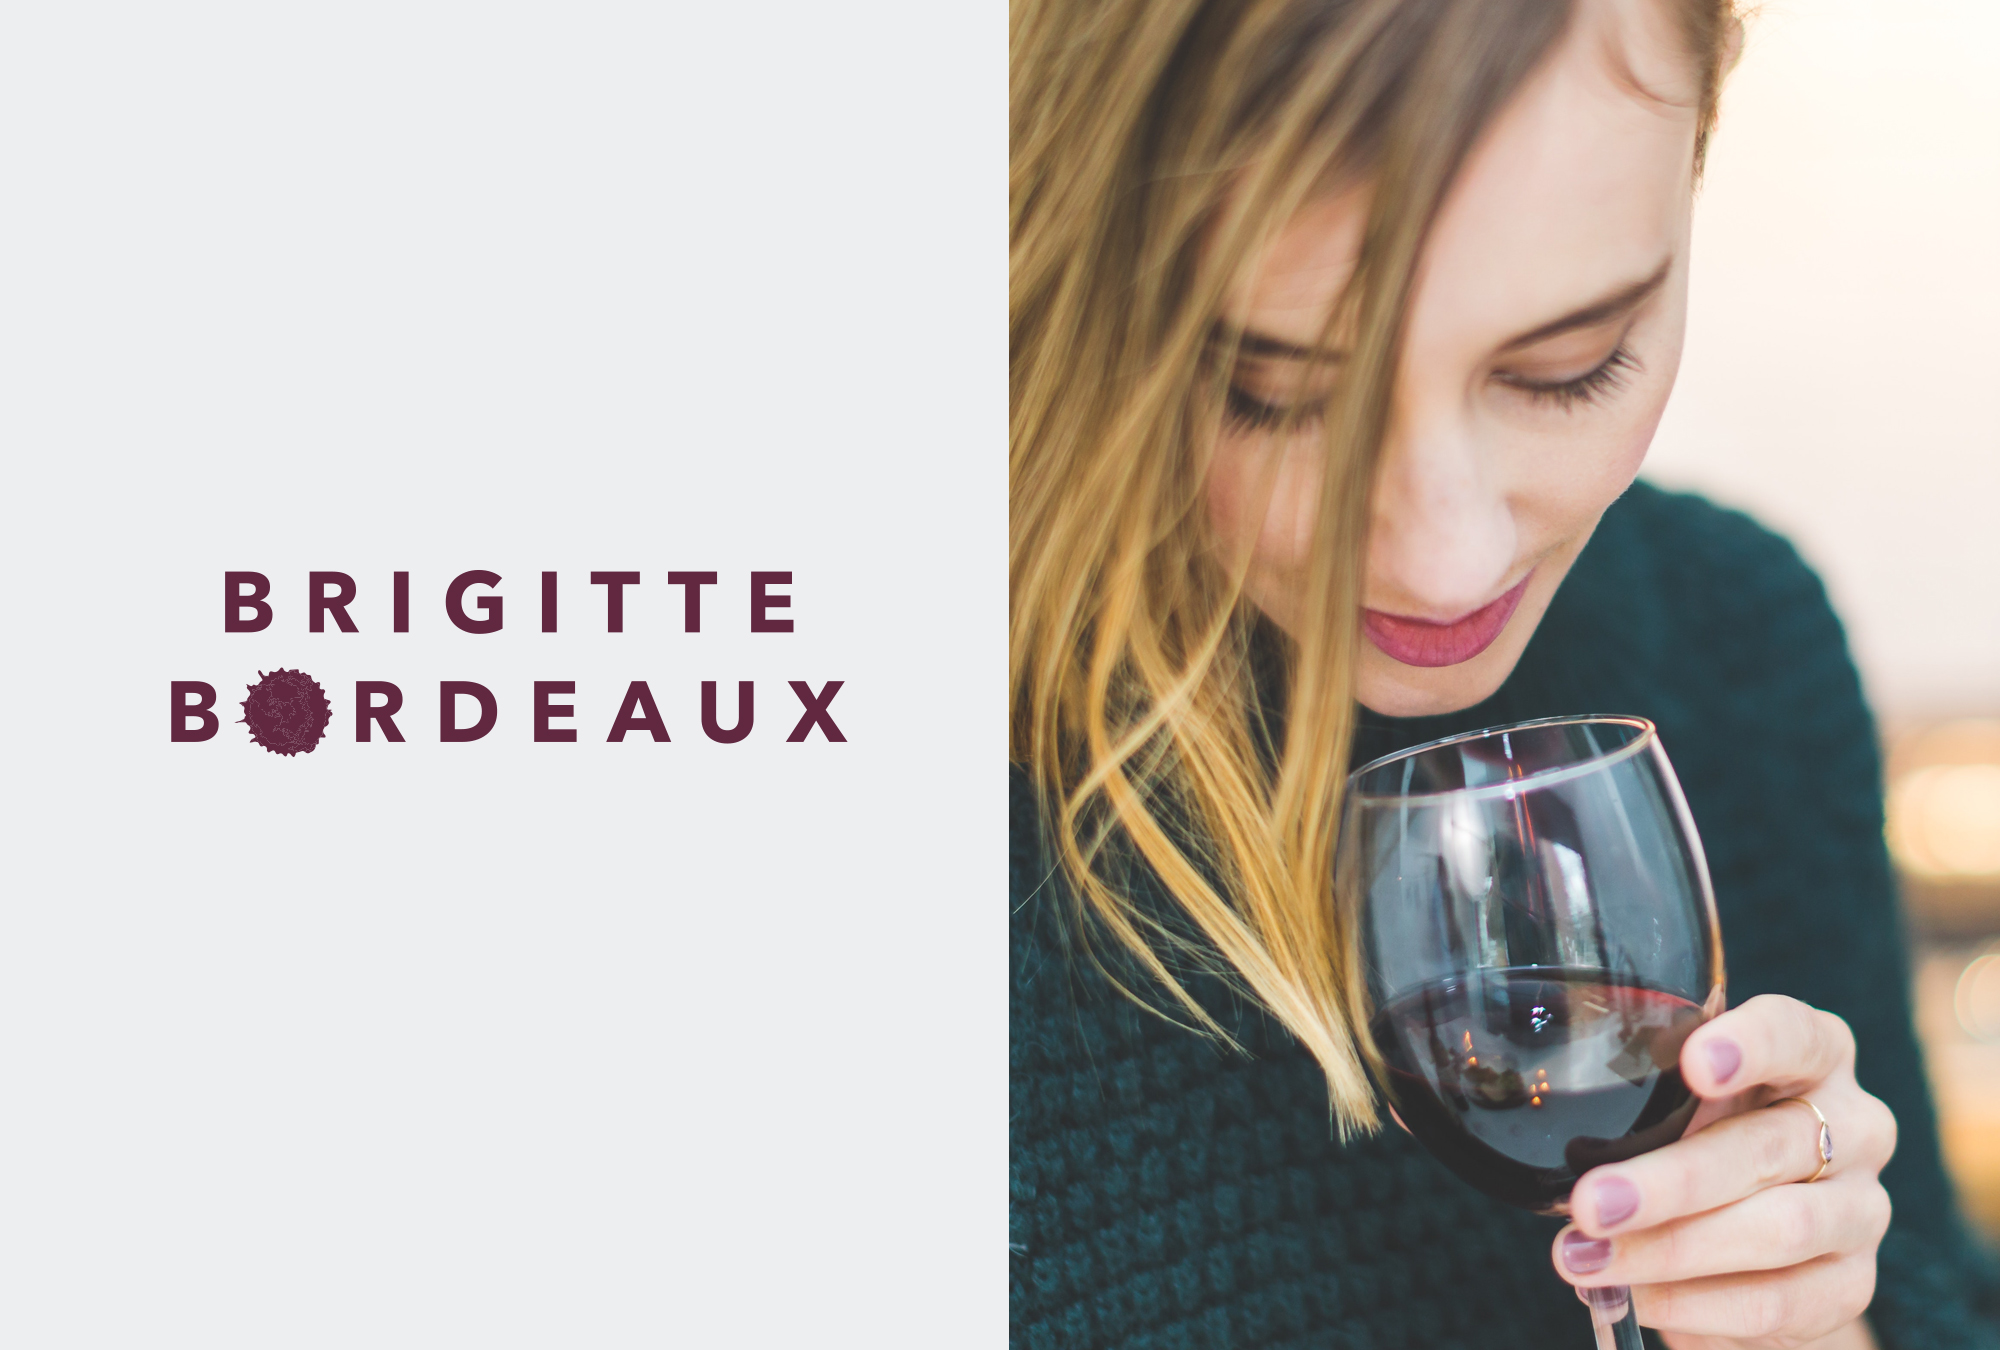 brigitte-bordeaux-logo-photo2.jpg